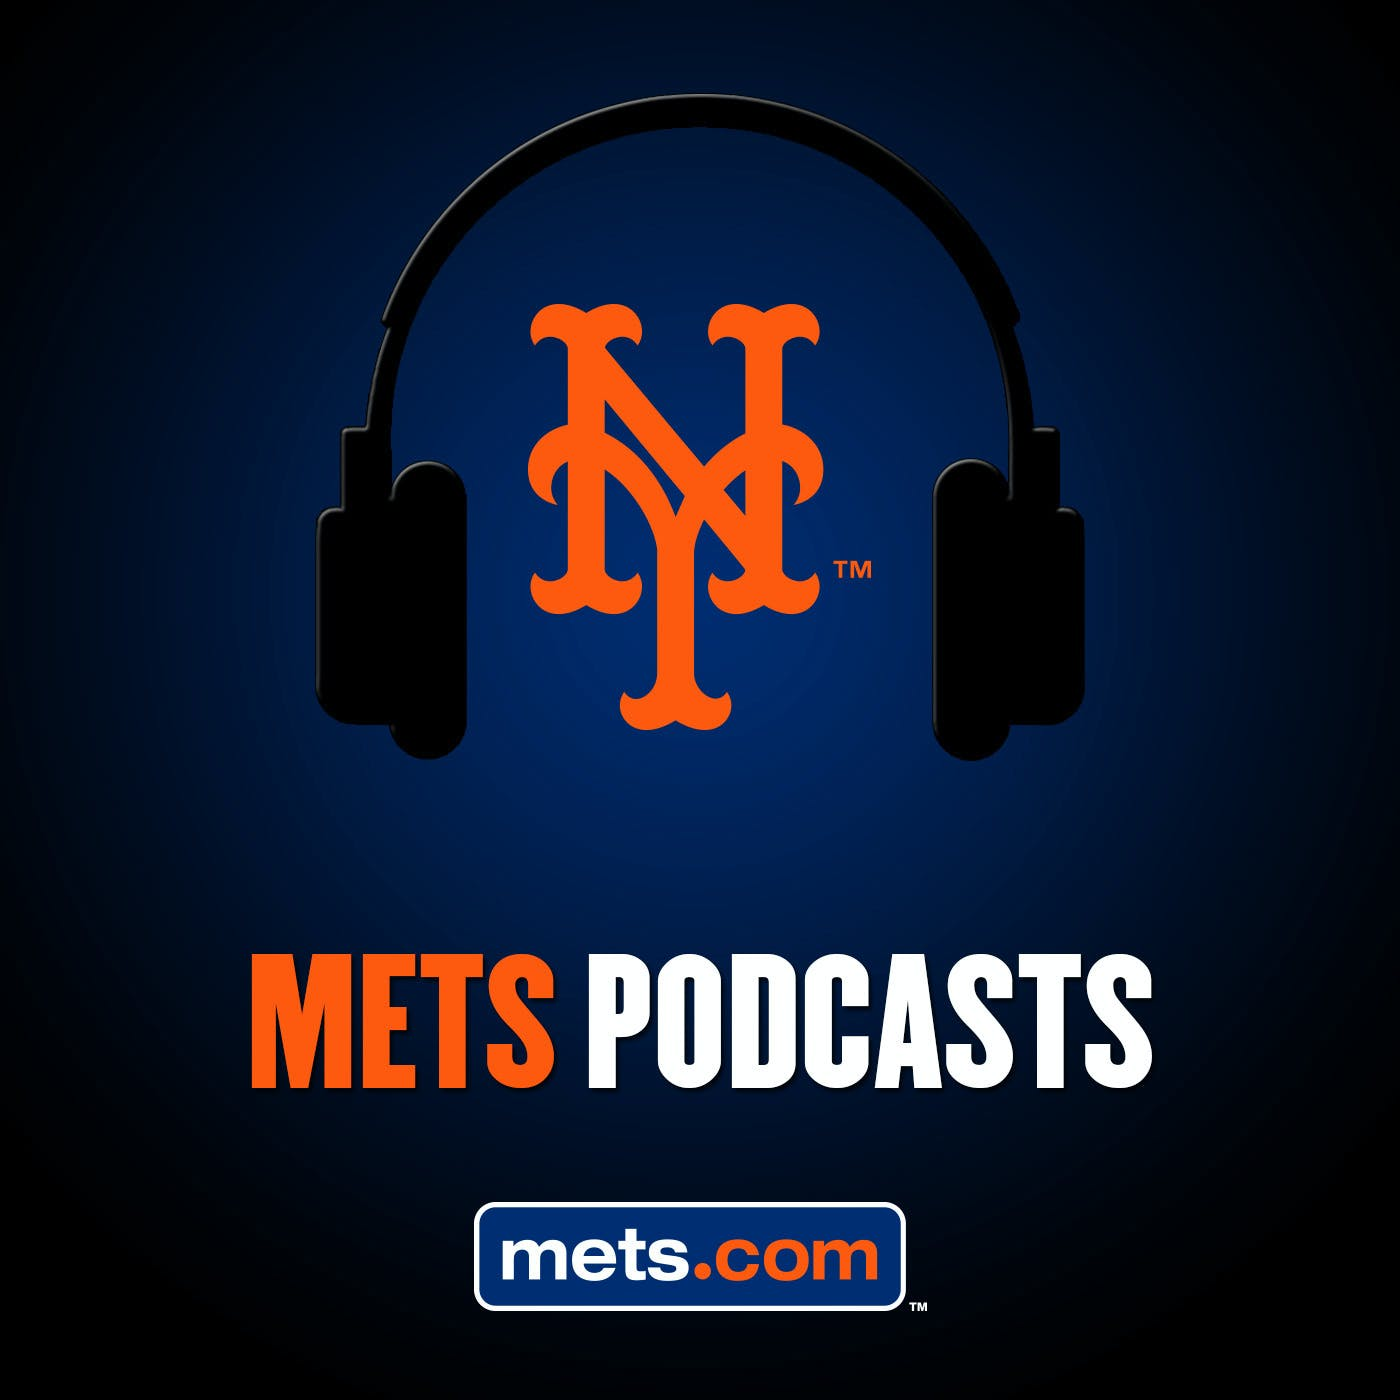 Jerry Manuel Talks Managing the Mets and Growing the Game